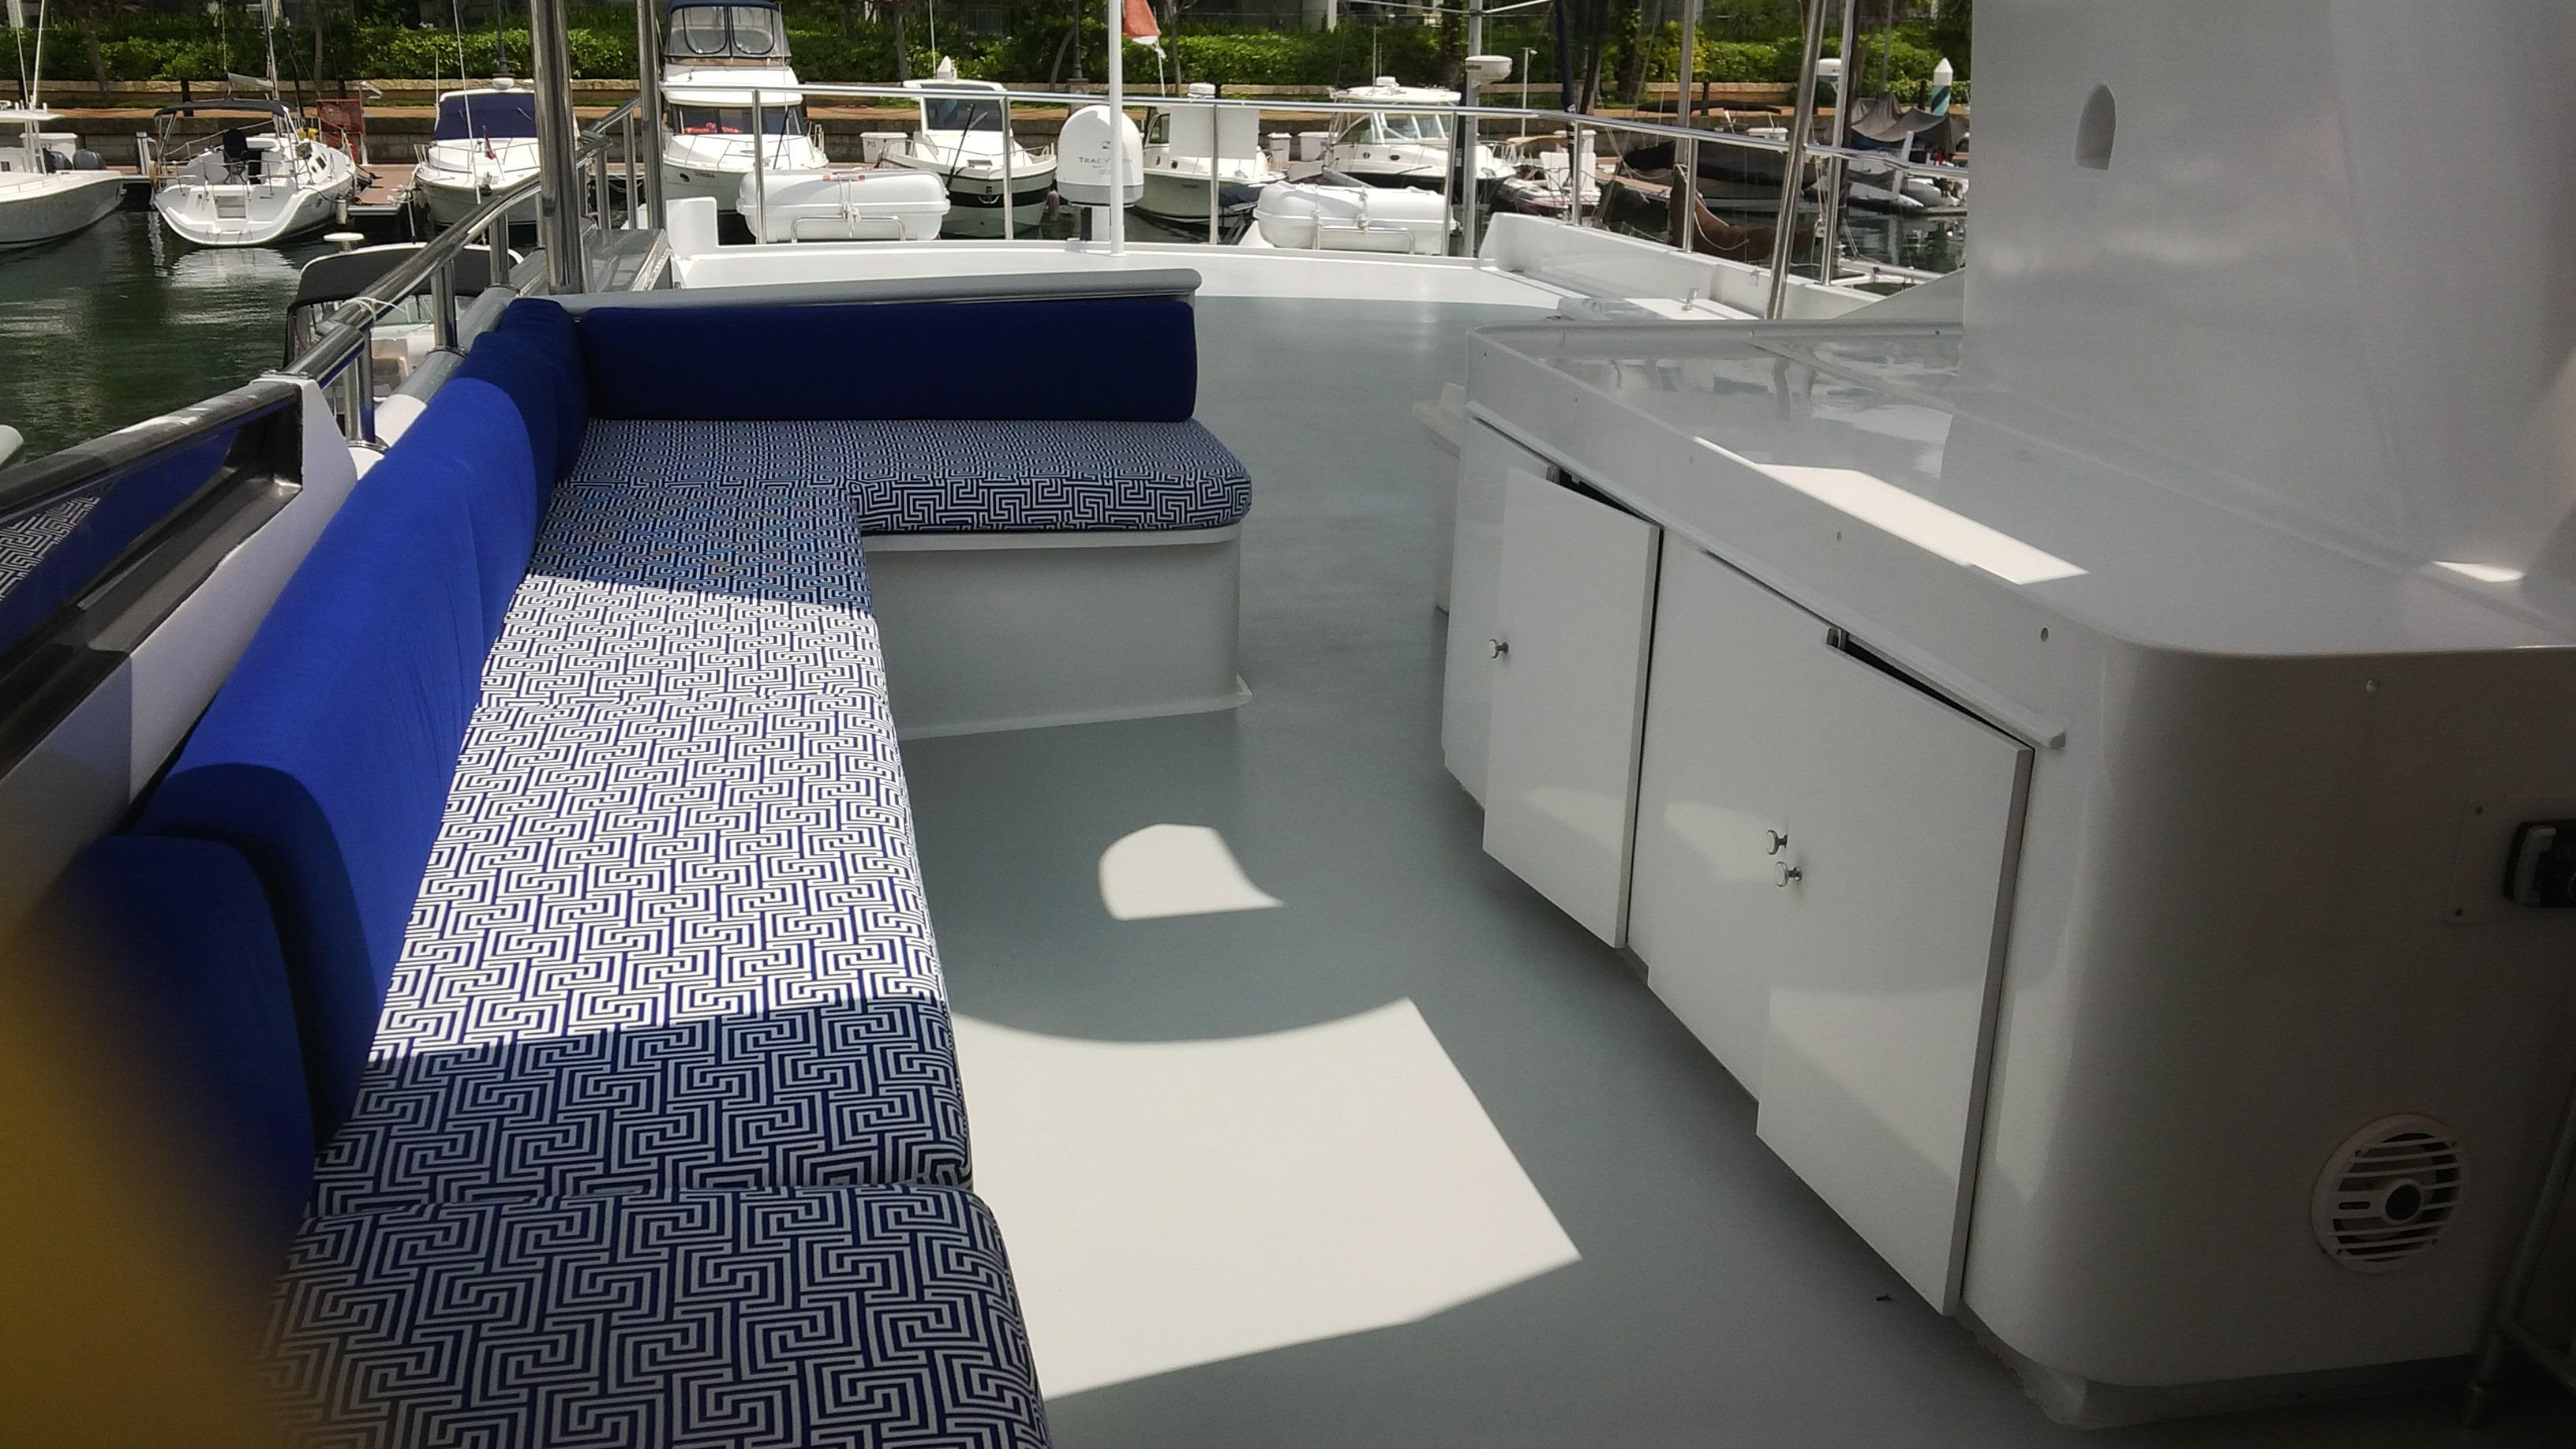 Looking Aft - Sbd Side Seating